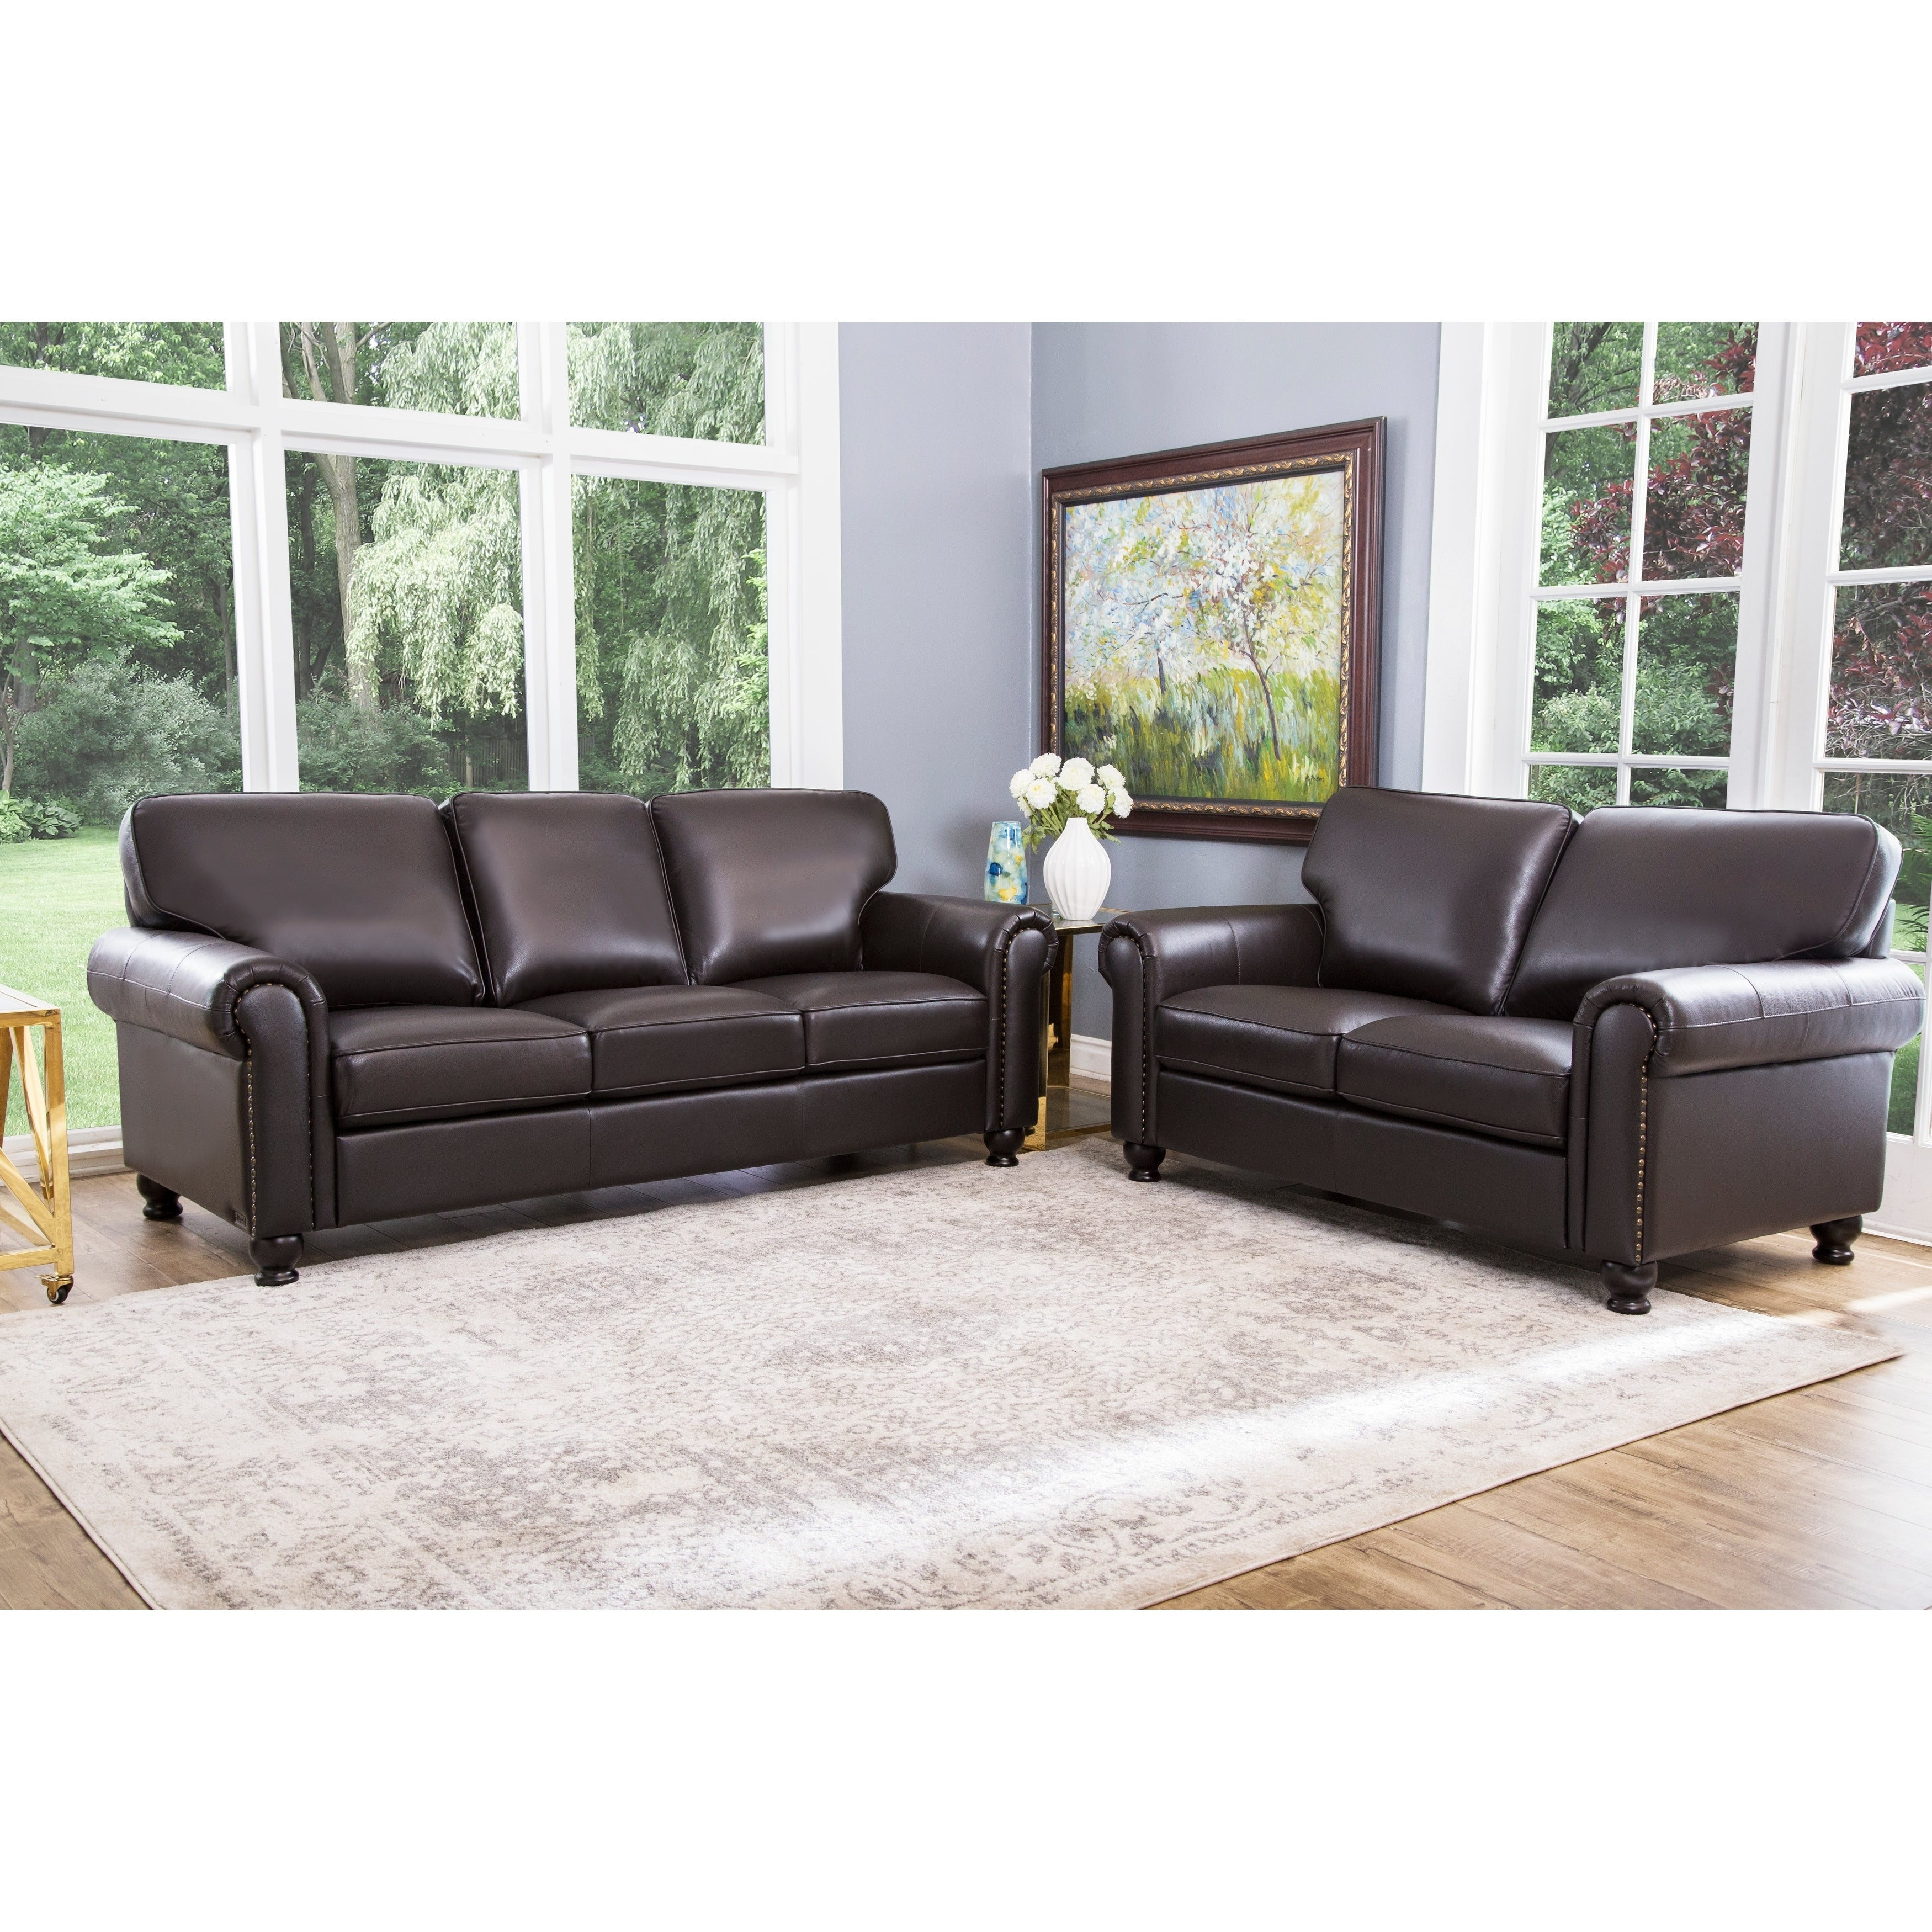 Abson London Brown Top Grain Leather 2 Piece Living Room Set for Best Living Room Set